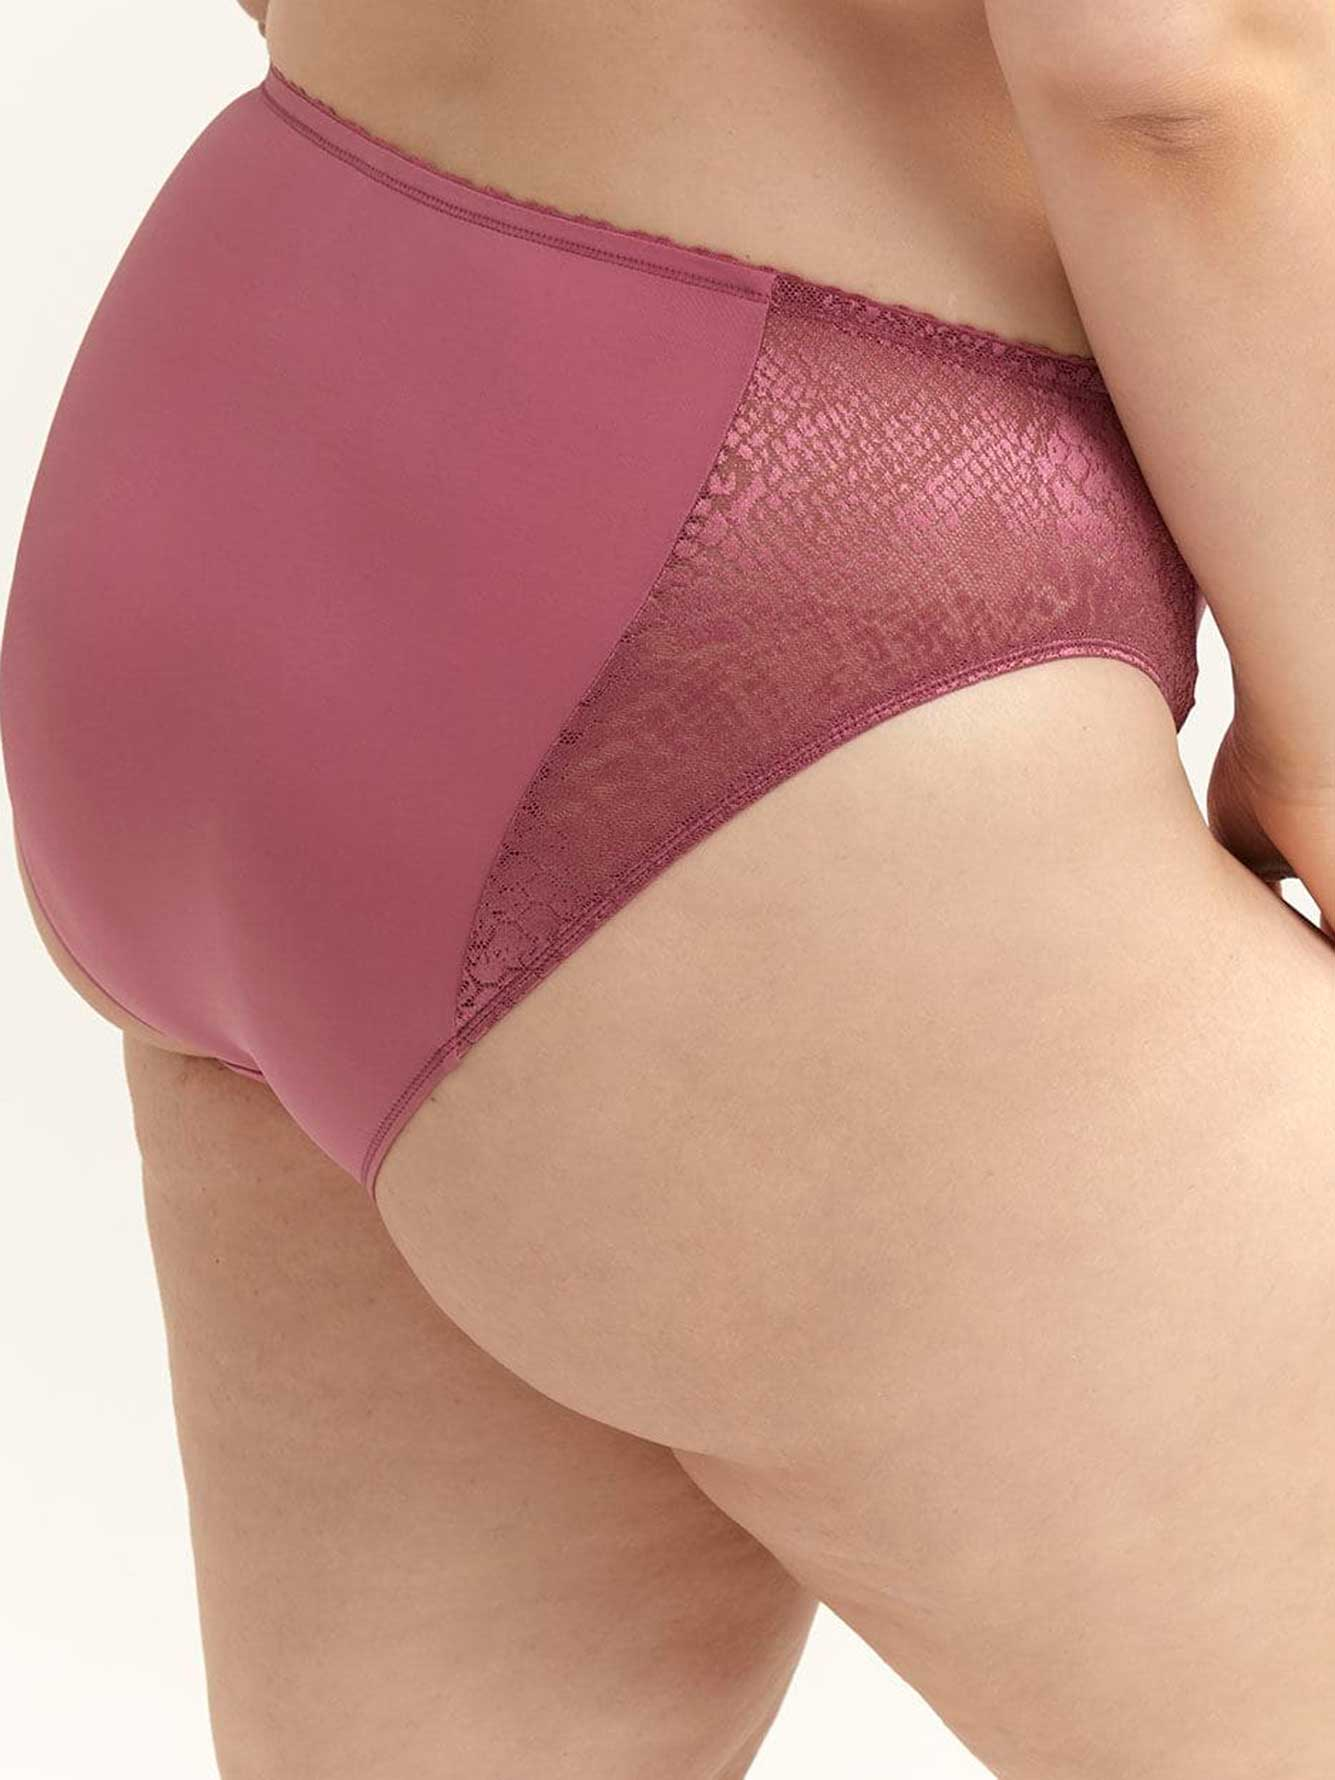 Snakeskin High Cut Brief Panty - ti Voglio